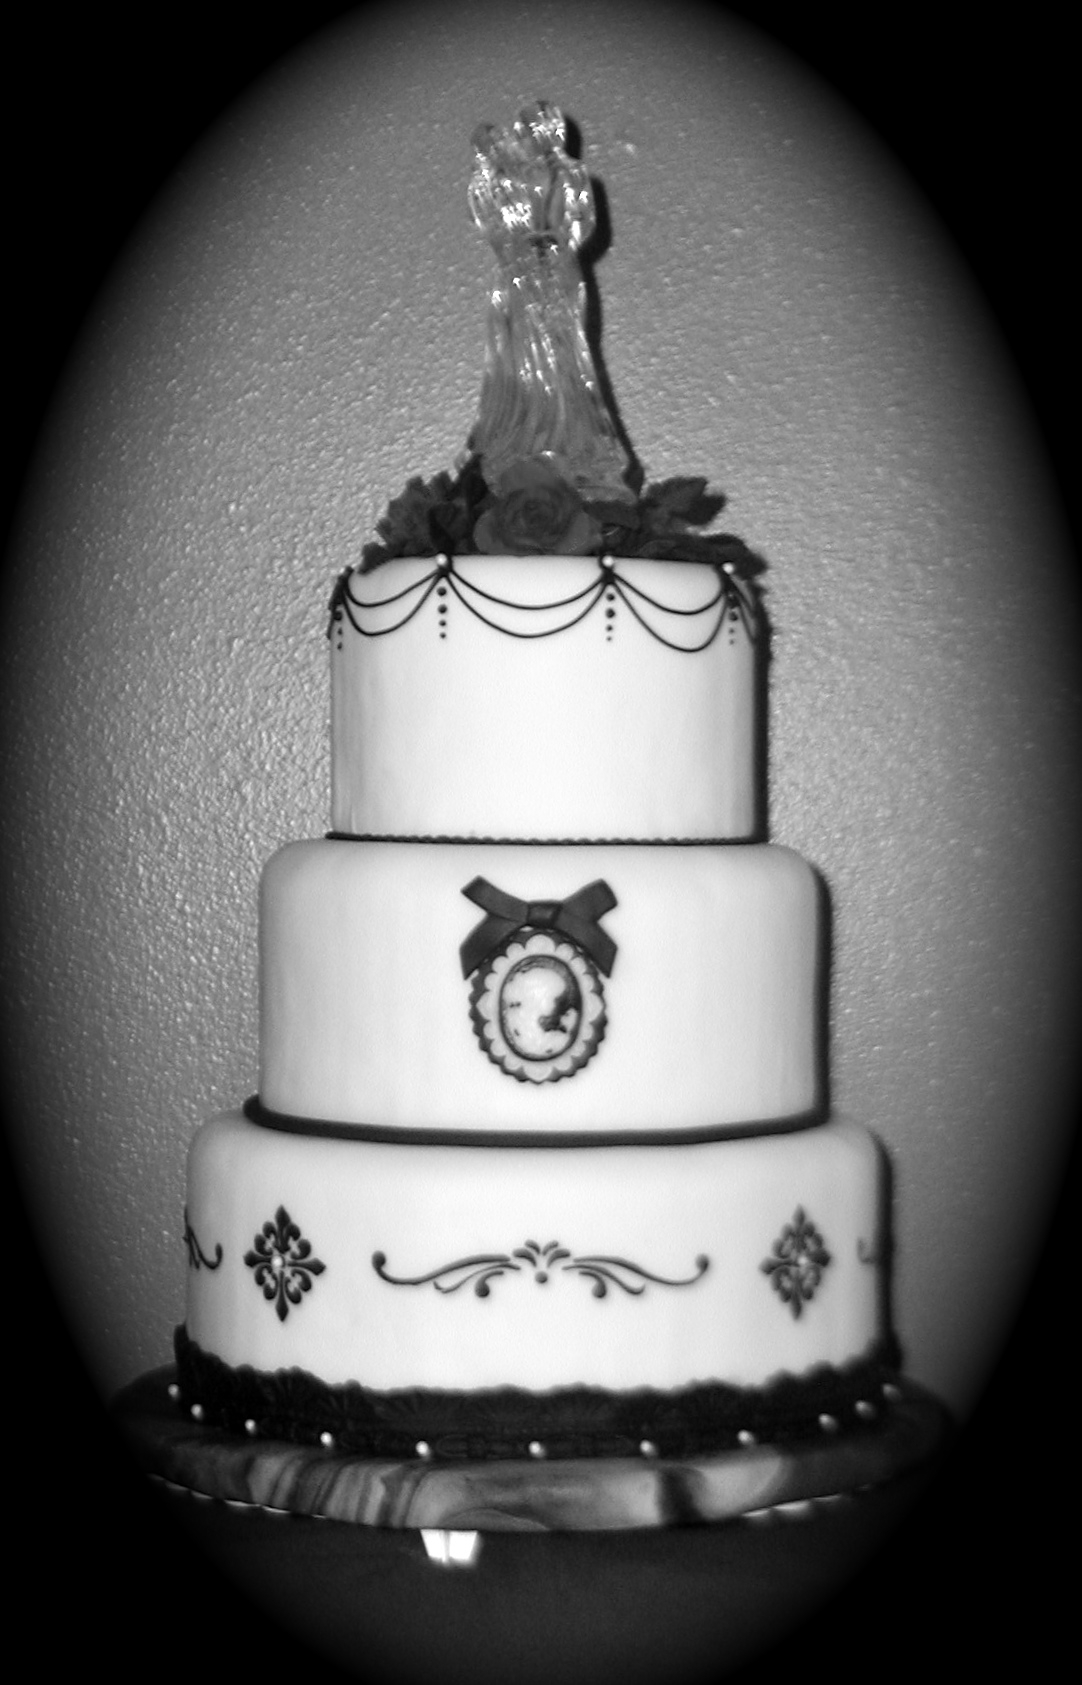 Black & White Cameo Wedding Cake by Say It With Frosting, Trish Sarfert.